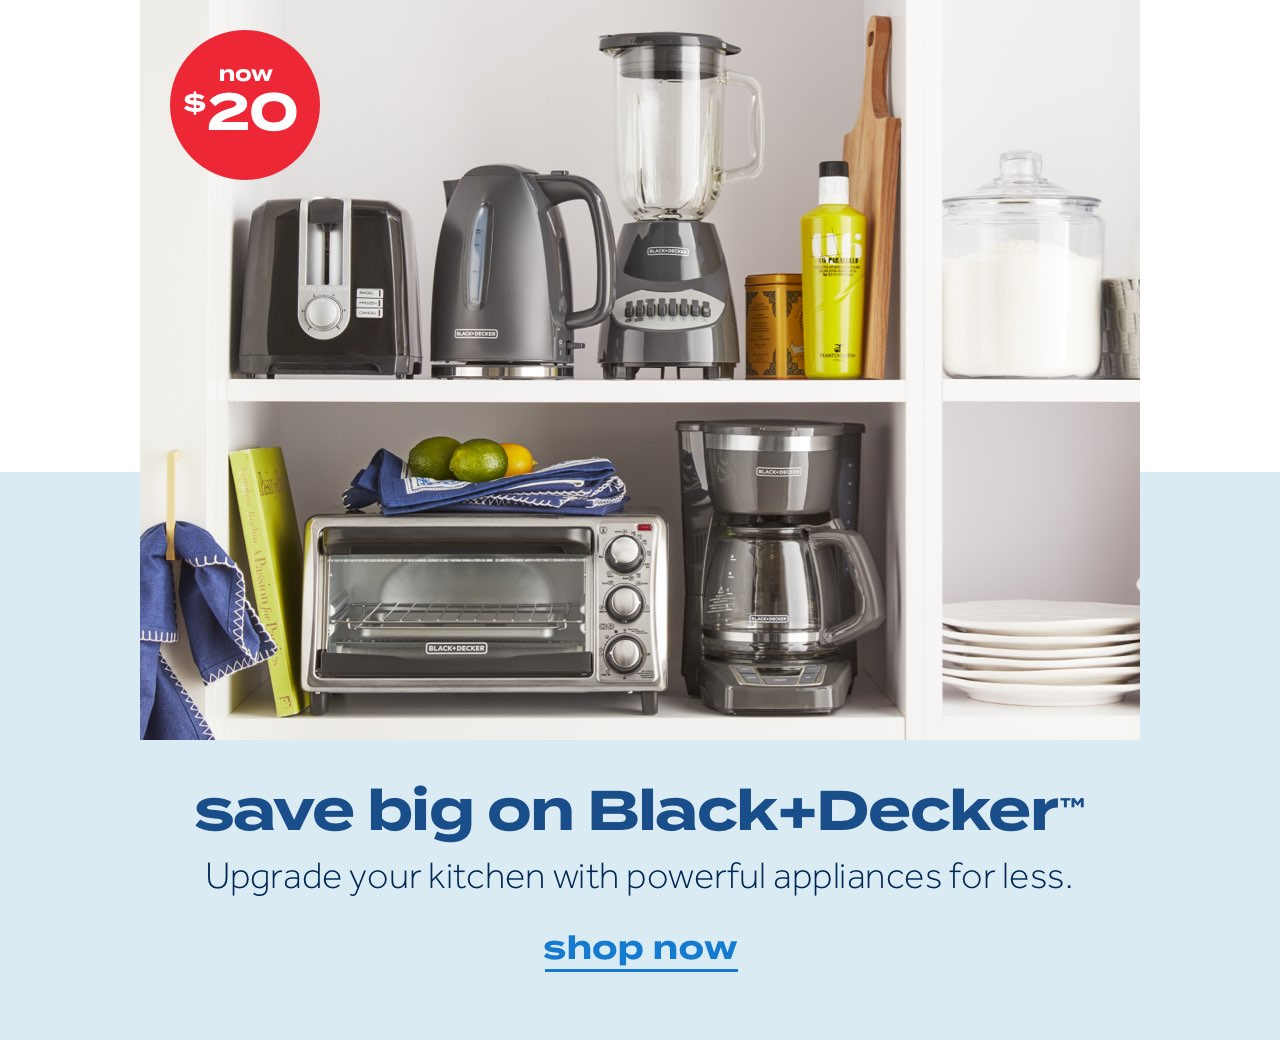 now $20. save big on Black+Decker™. Upgrade your kitchen with powerful appliances for less. shop now